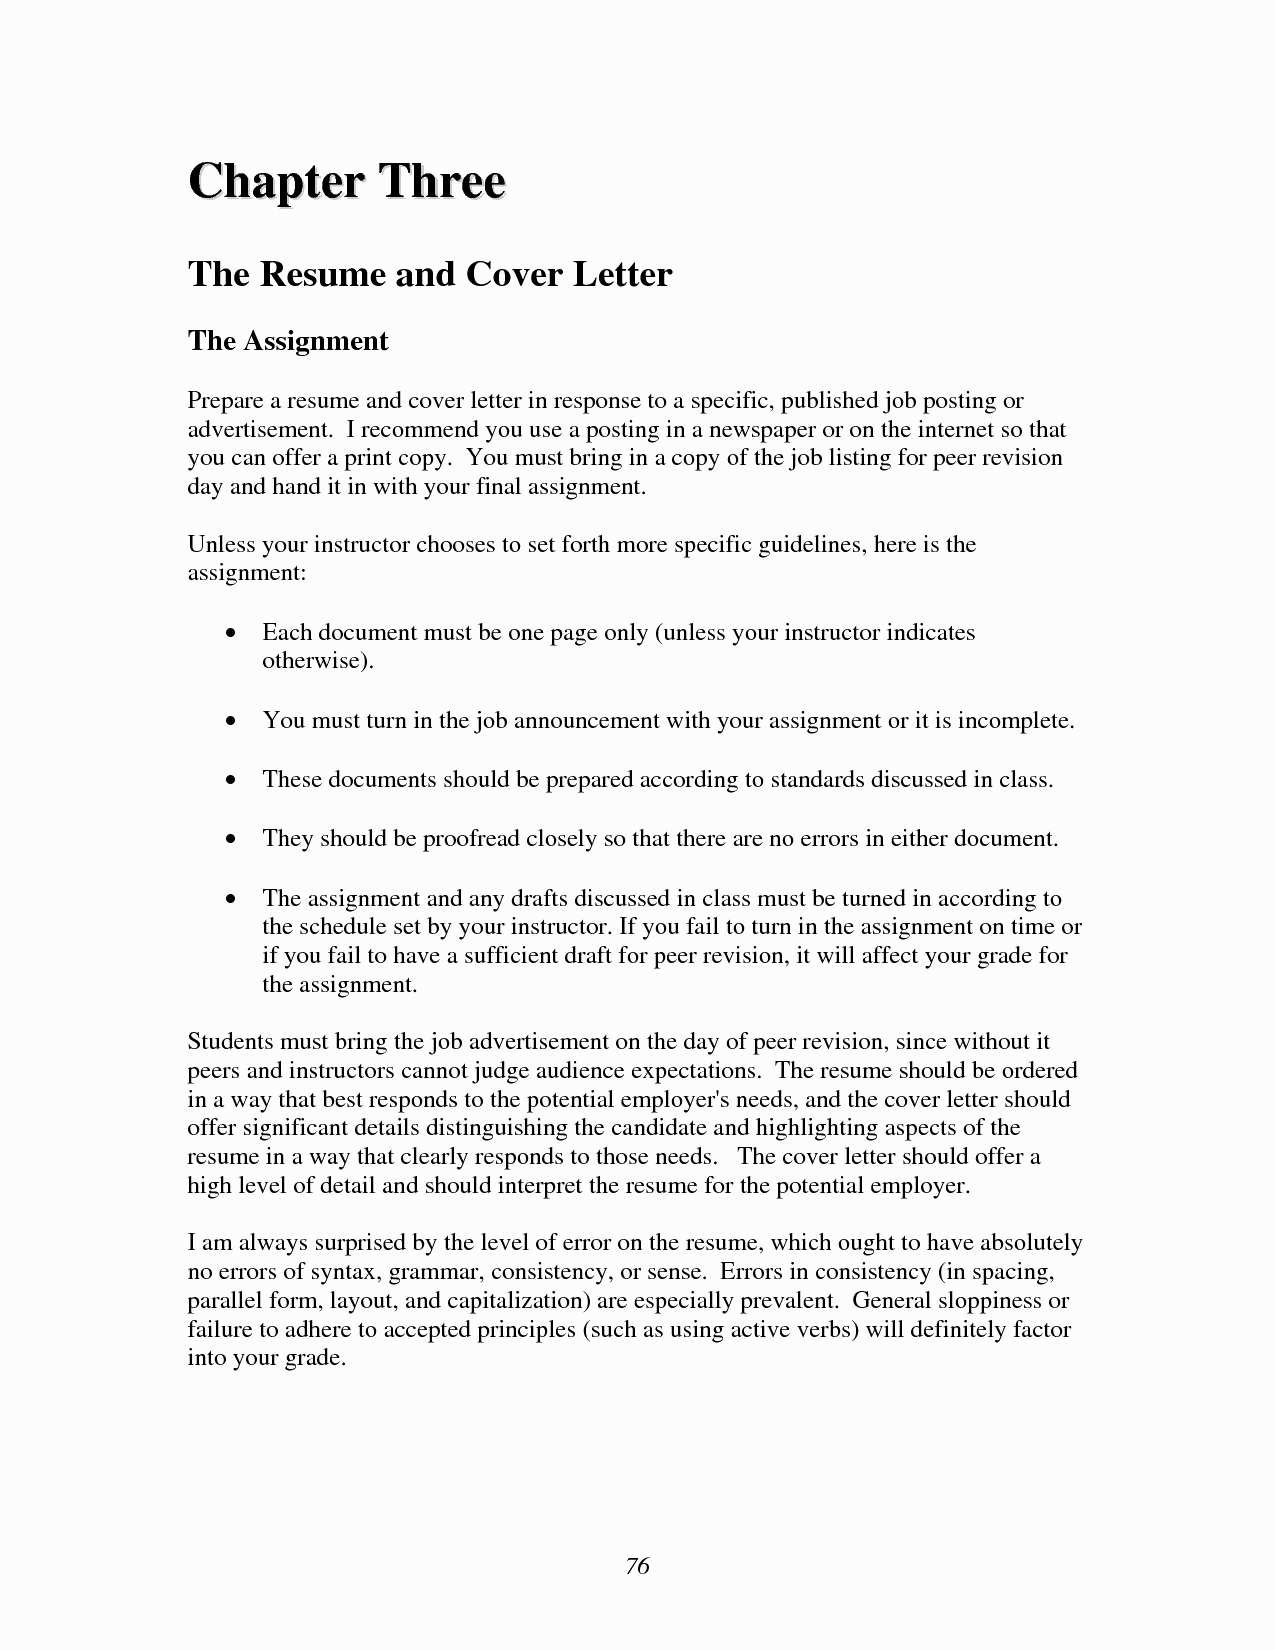 Cover Letter Copy and Paste Template - Copy and Paste Cover Letter Free Fresh Job Fer Letter Template Us